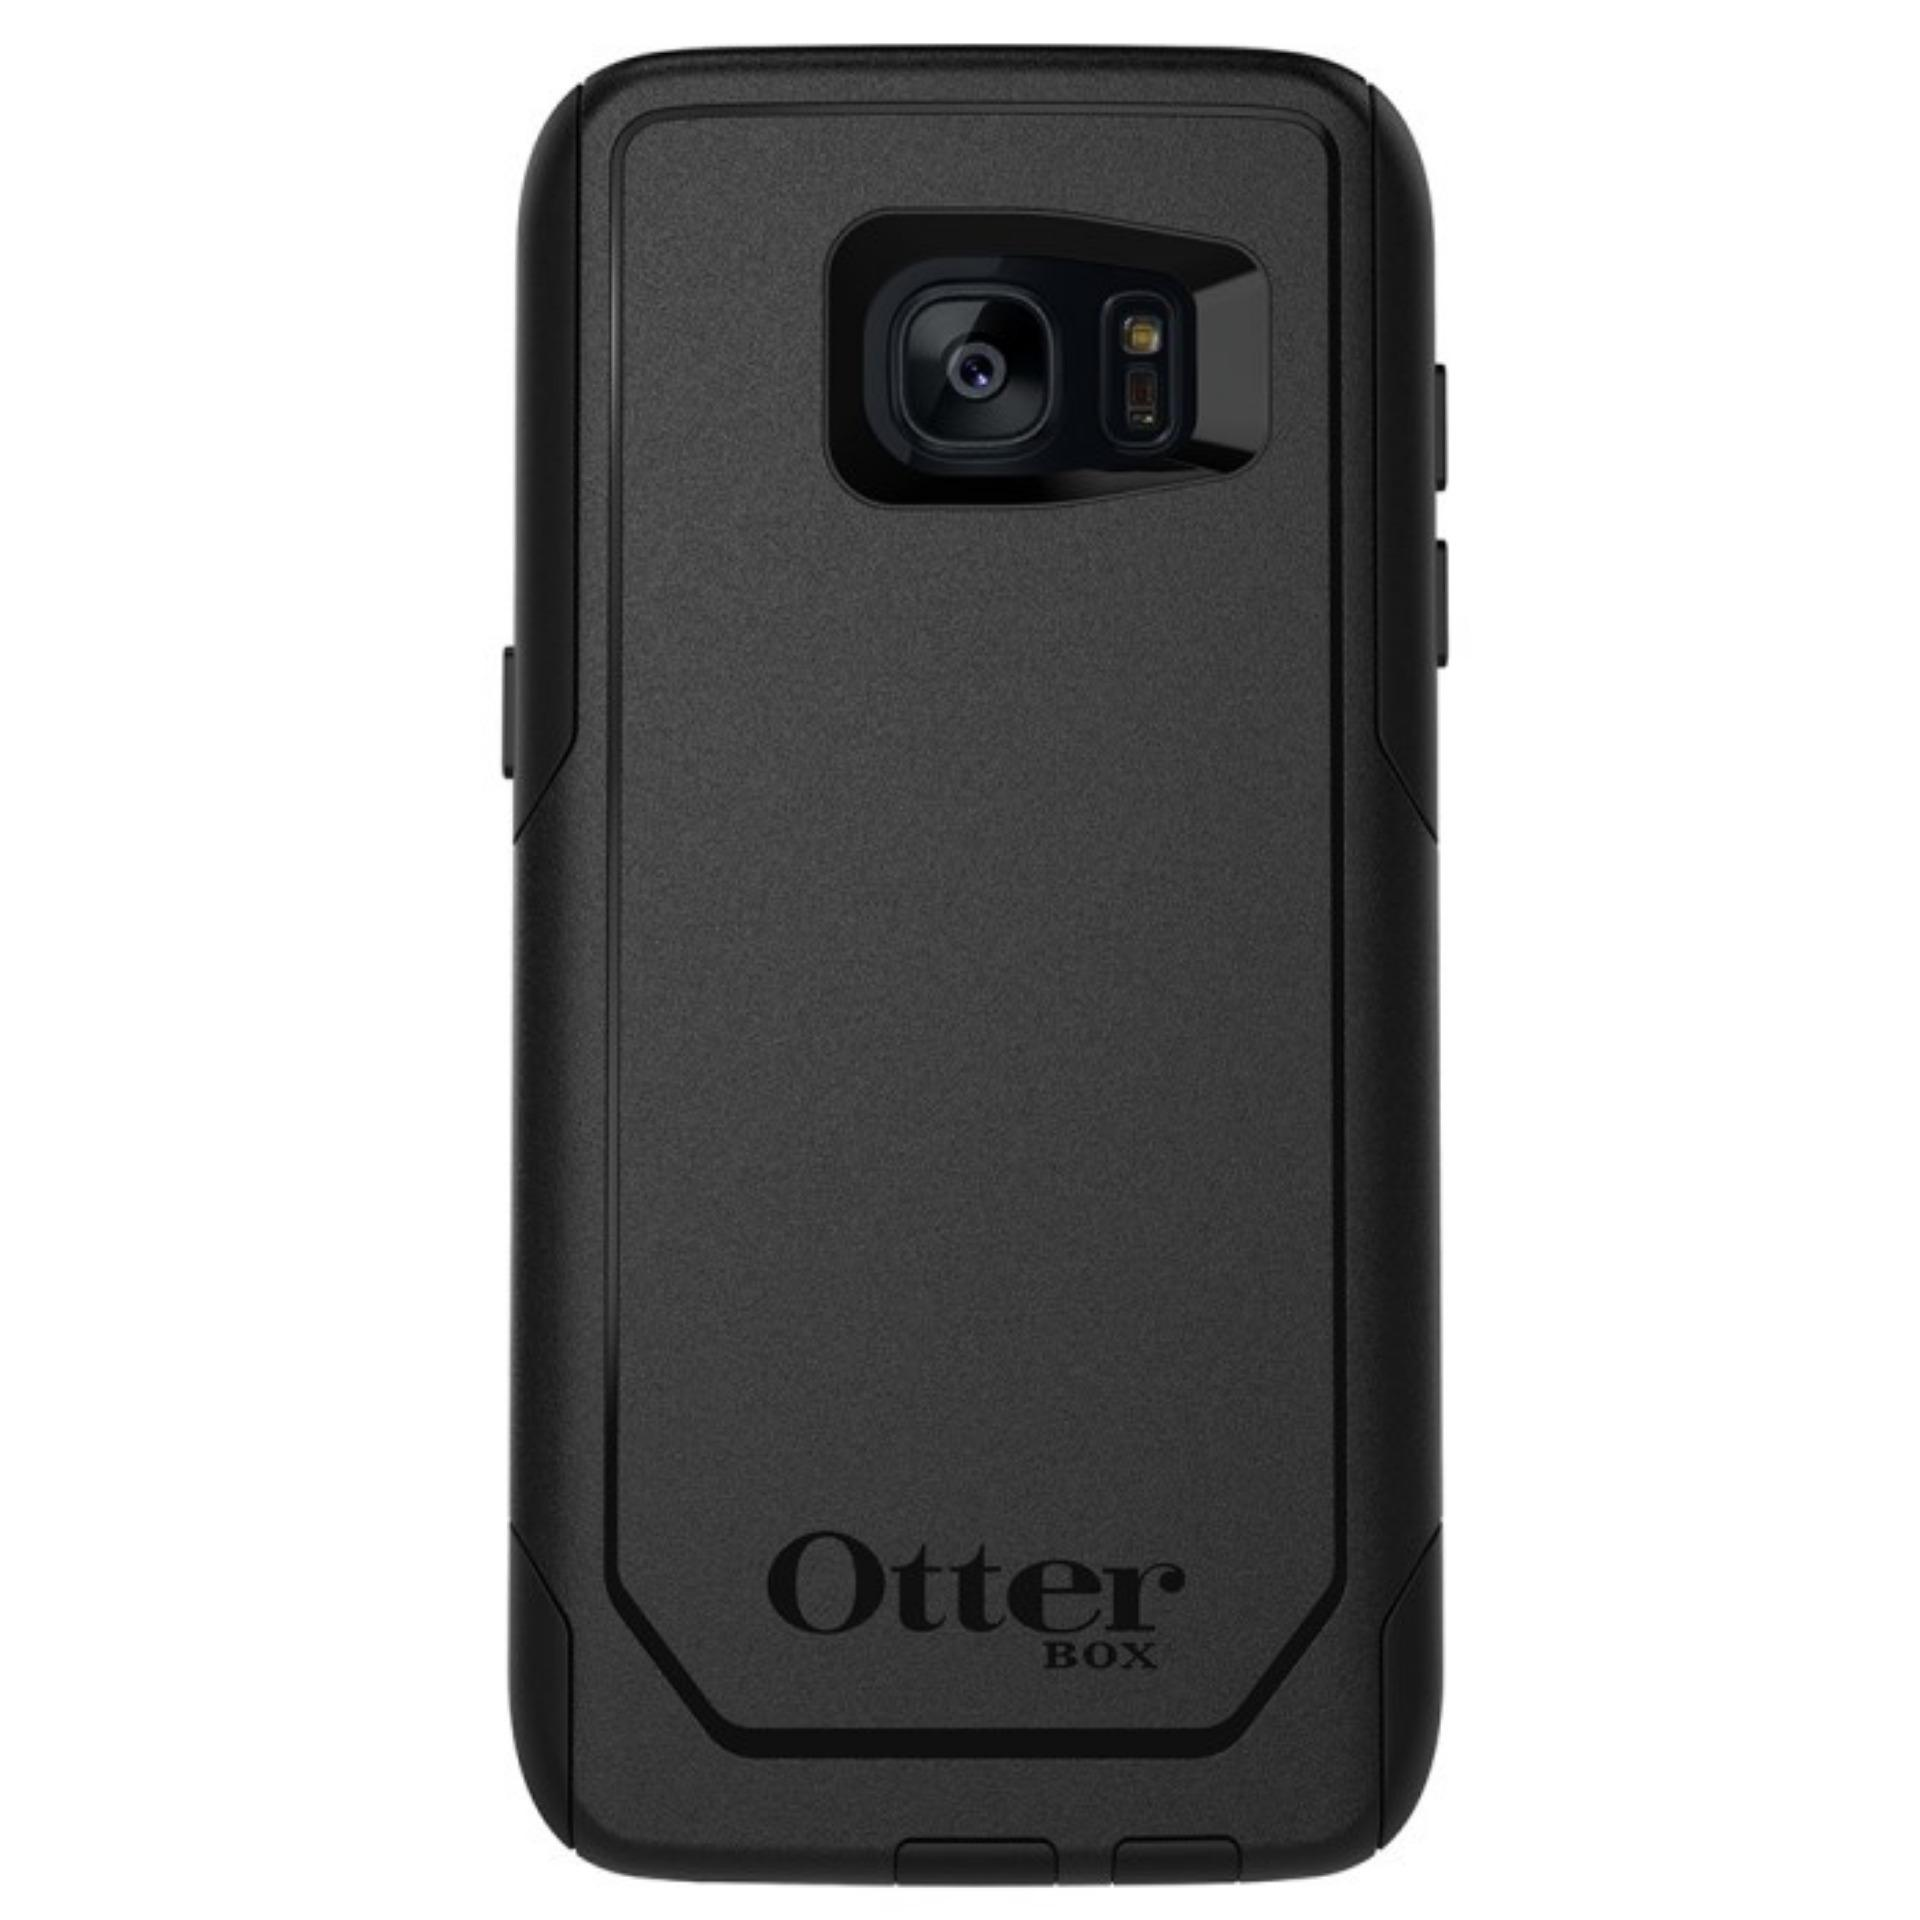 Toko Otterbox Commuter Series Samsung Galaxy S7 Edge Black Lengkap